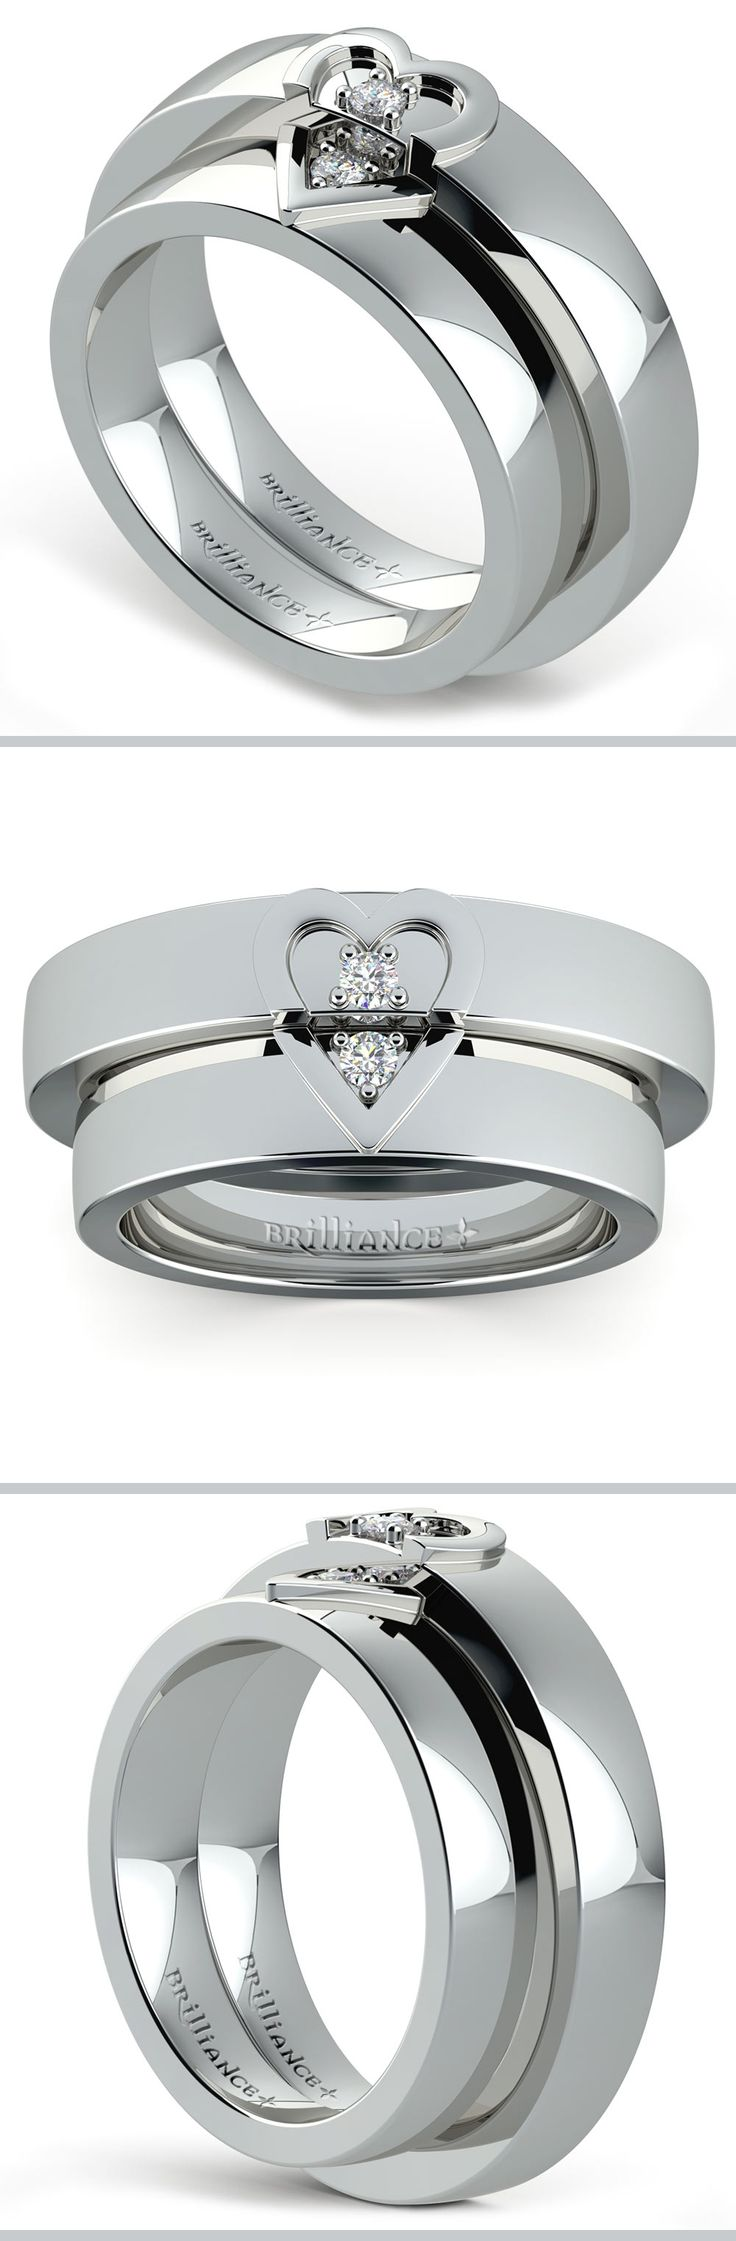 Matching His And Hers 5 Mm Wedding Bands In Platinum Feature A Split Heart  Puzzle Detail